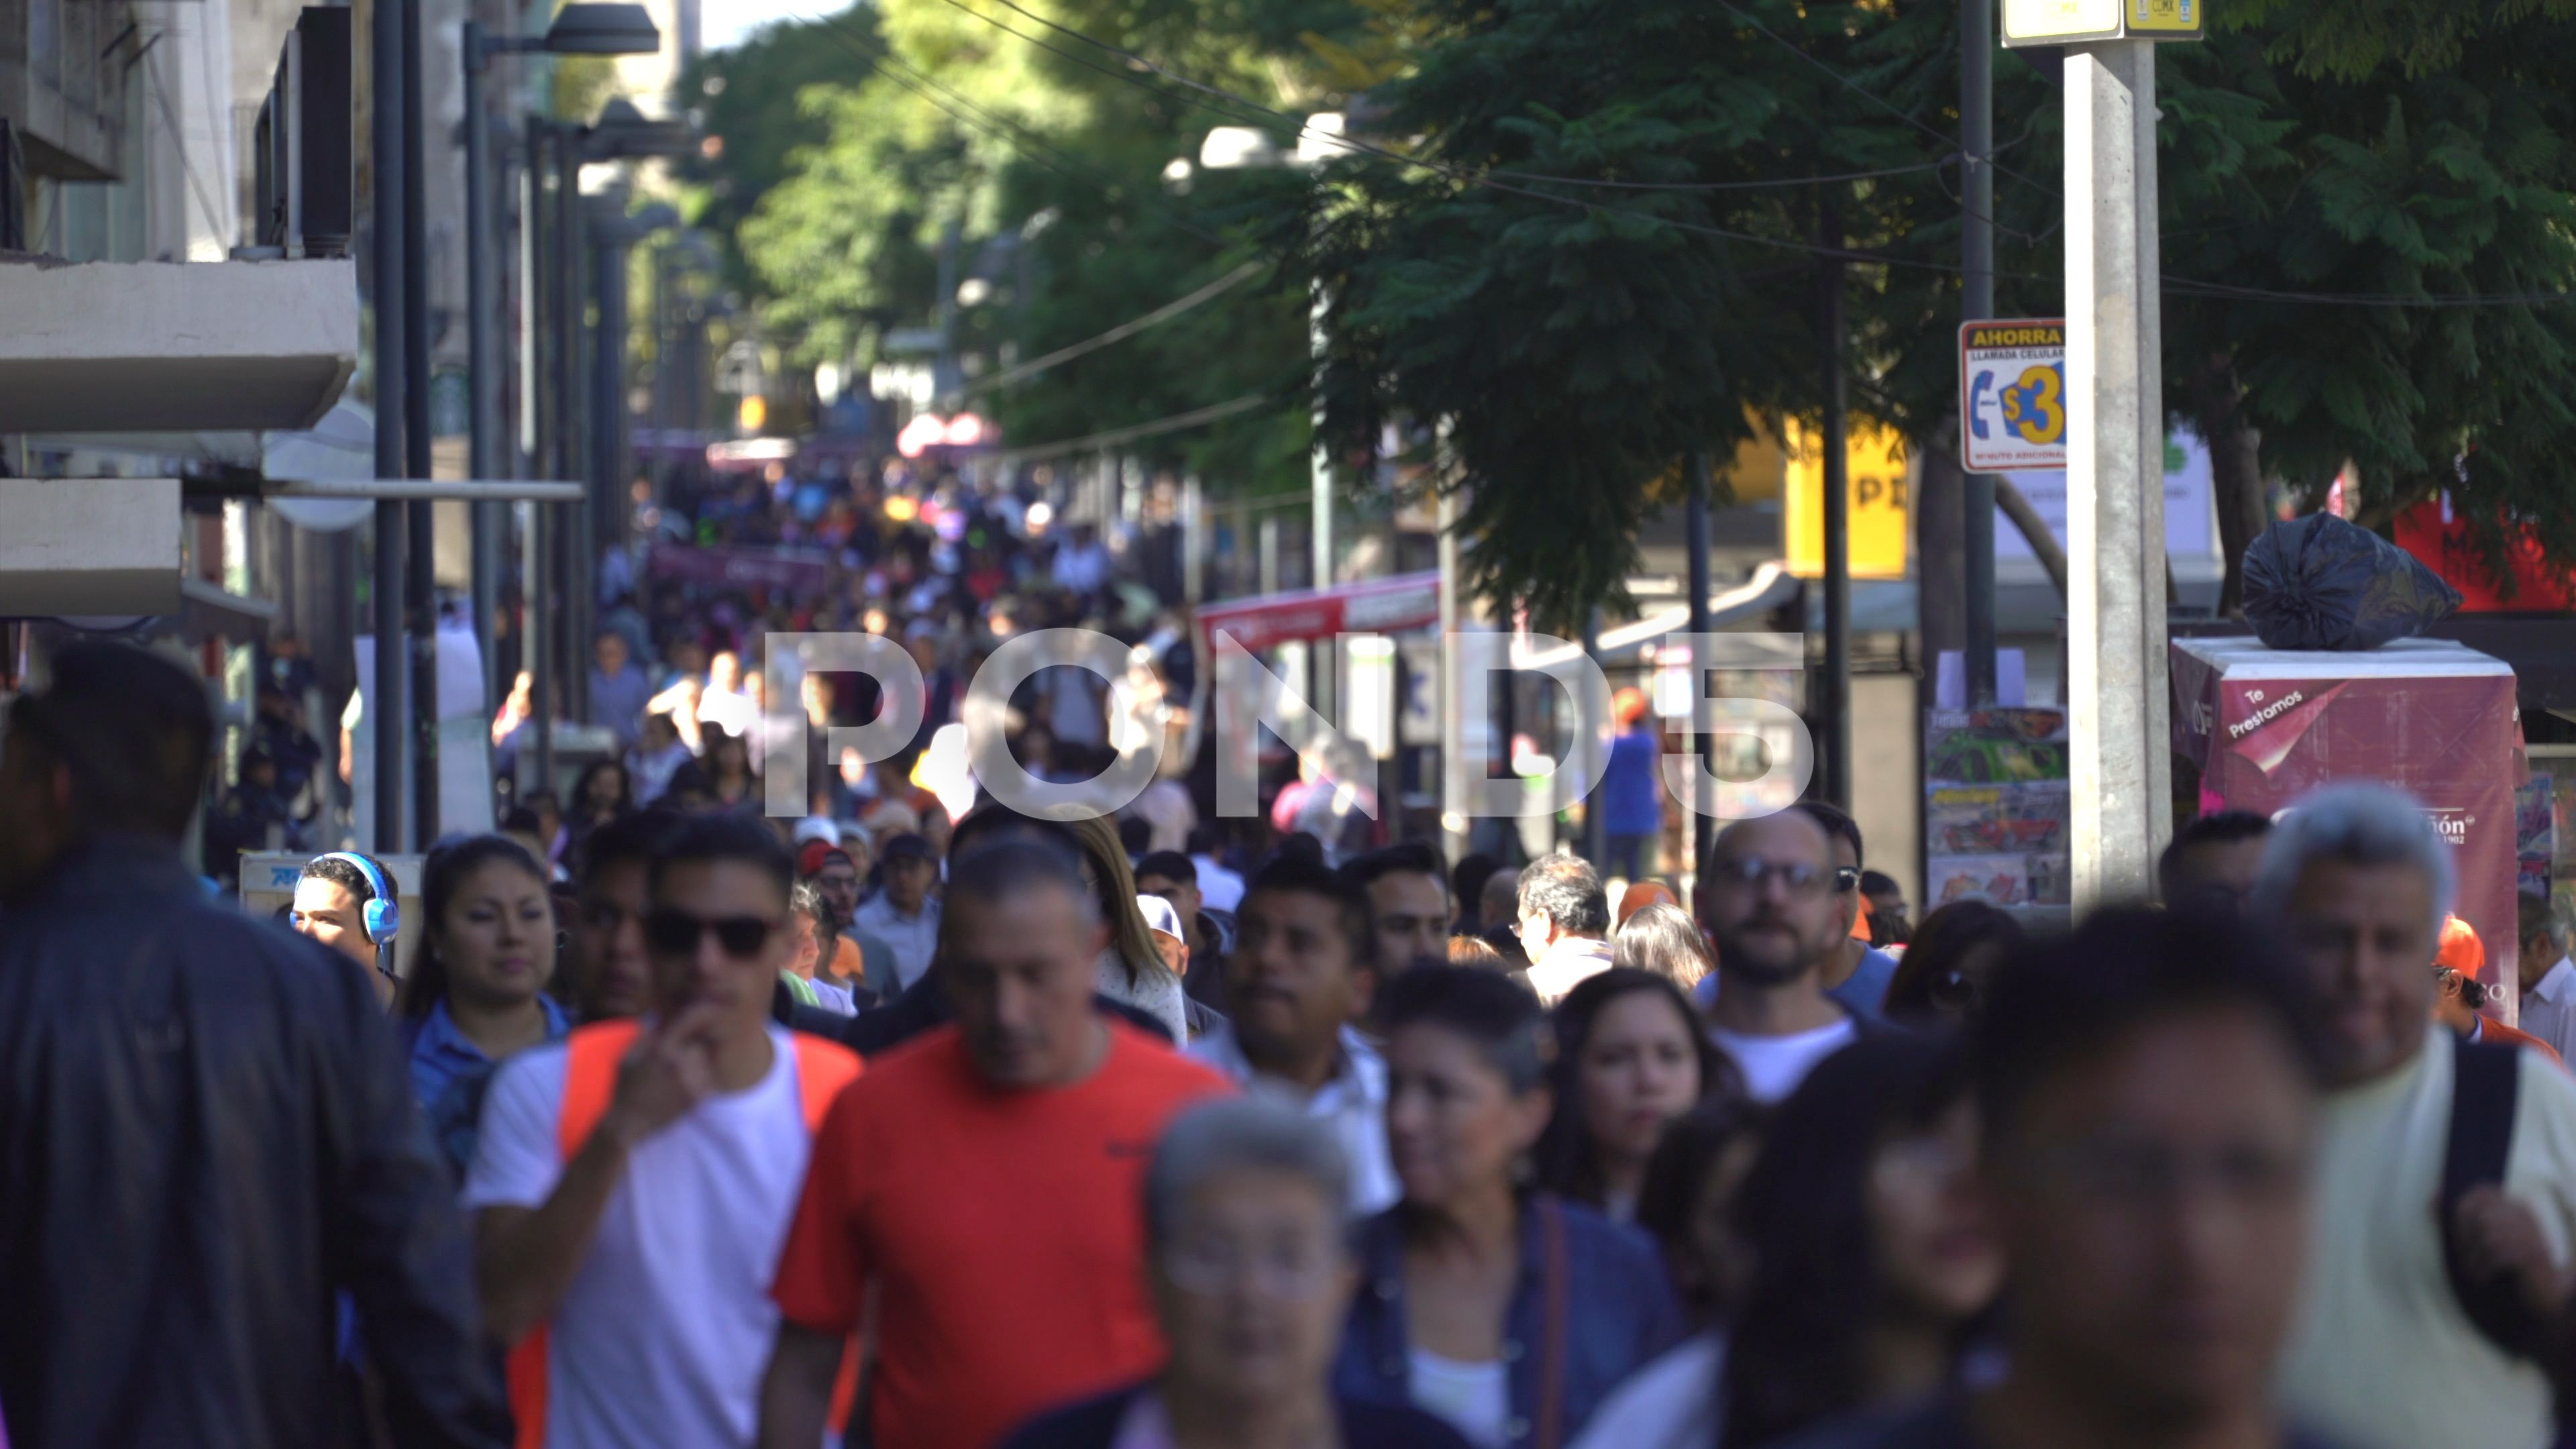 Mexico City Downtown Crowd Of People Walking Busy Street Scene Stock Footage Ad Crowd People Downtown Mexico Street Scenes Stock Footage Mexico City